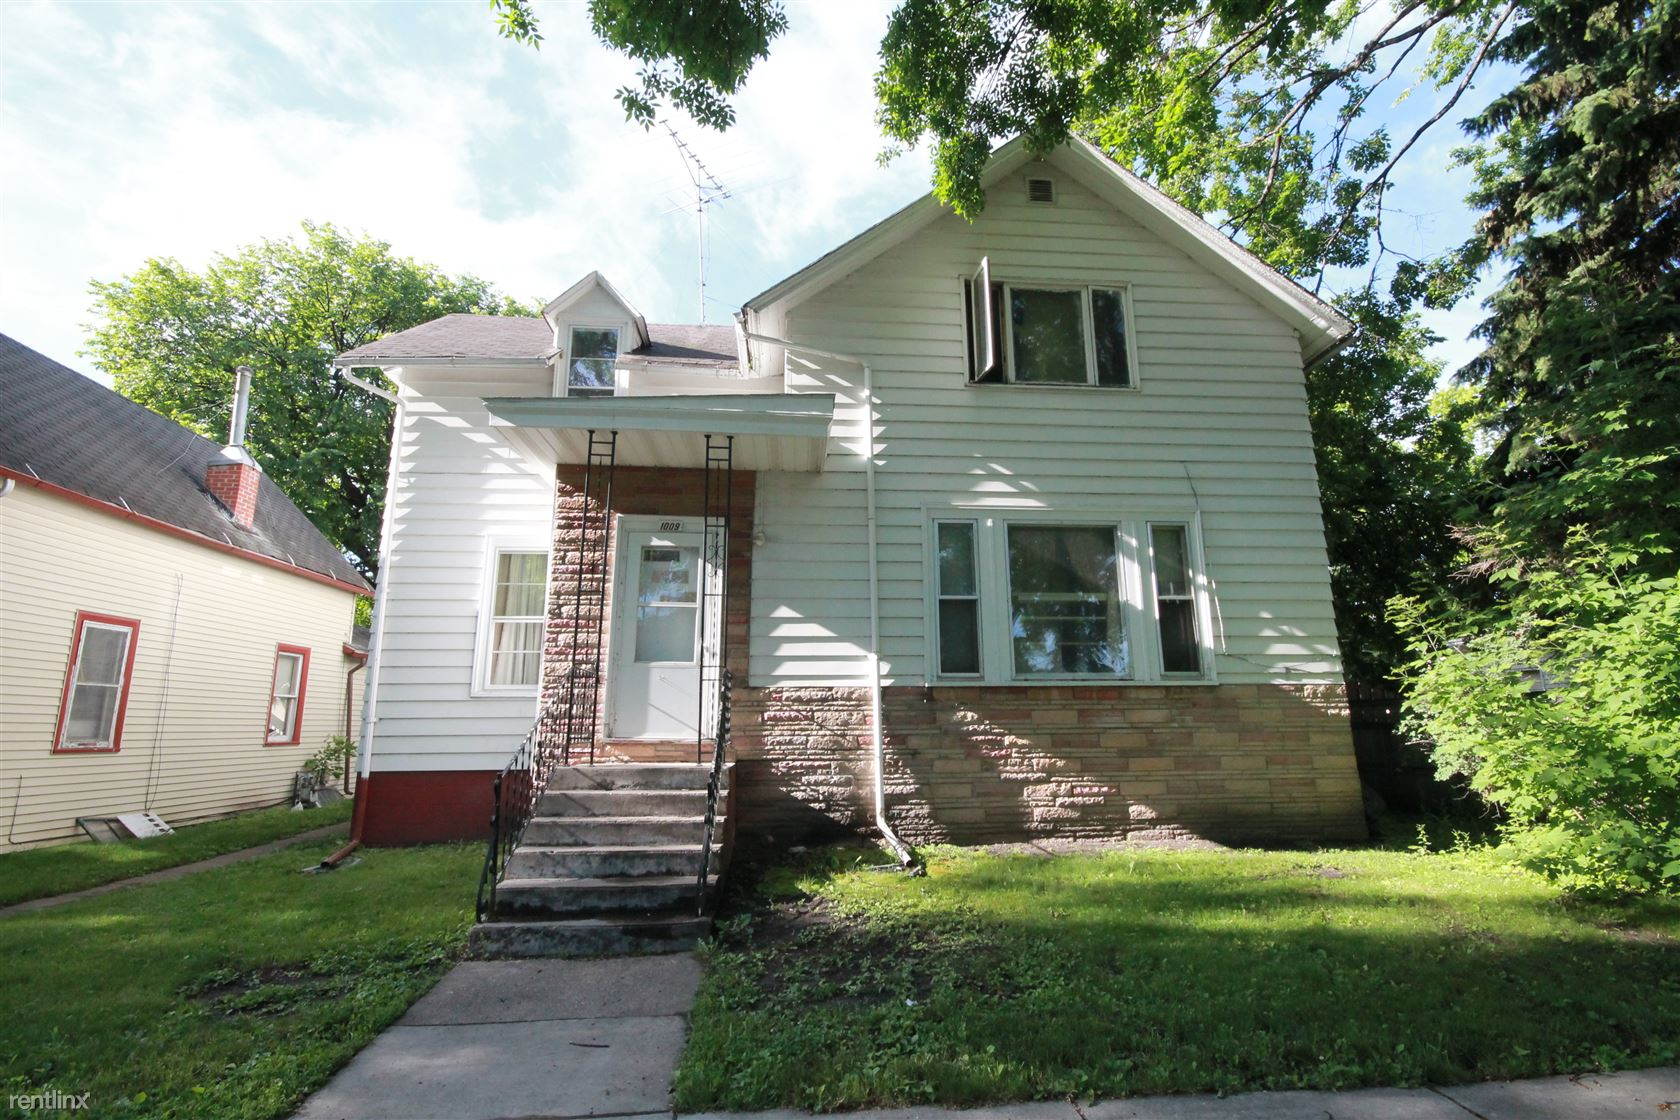 1009 2nd Ave N, Grand Forks, ND - $525